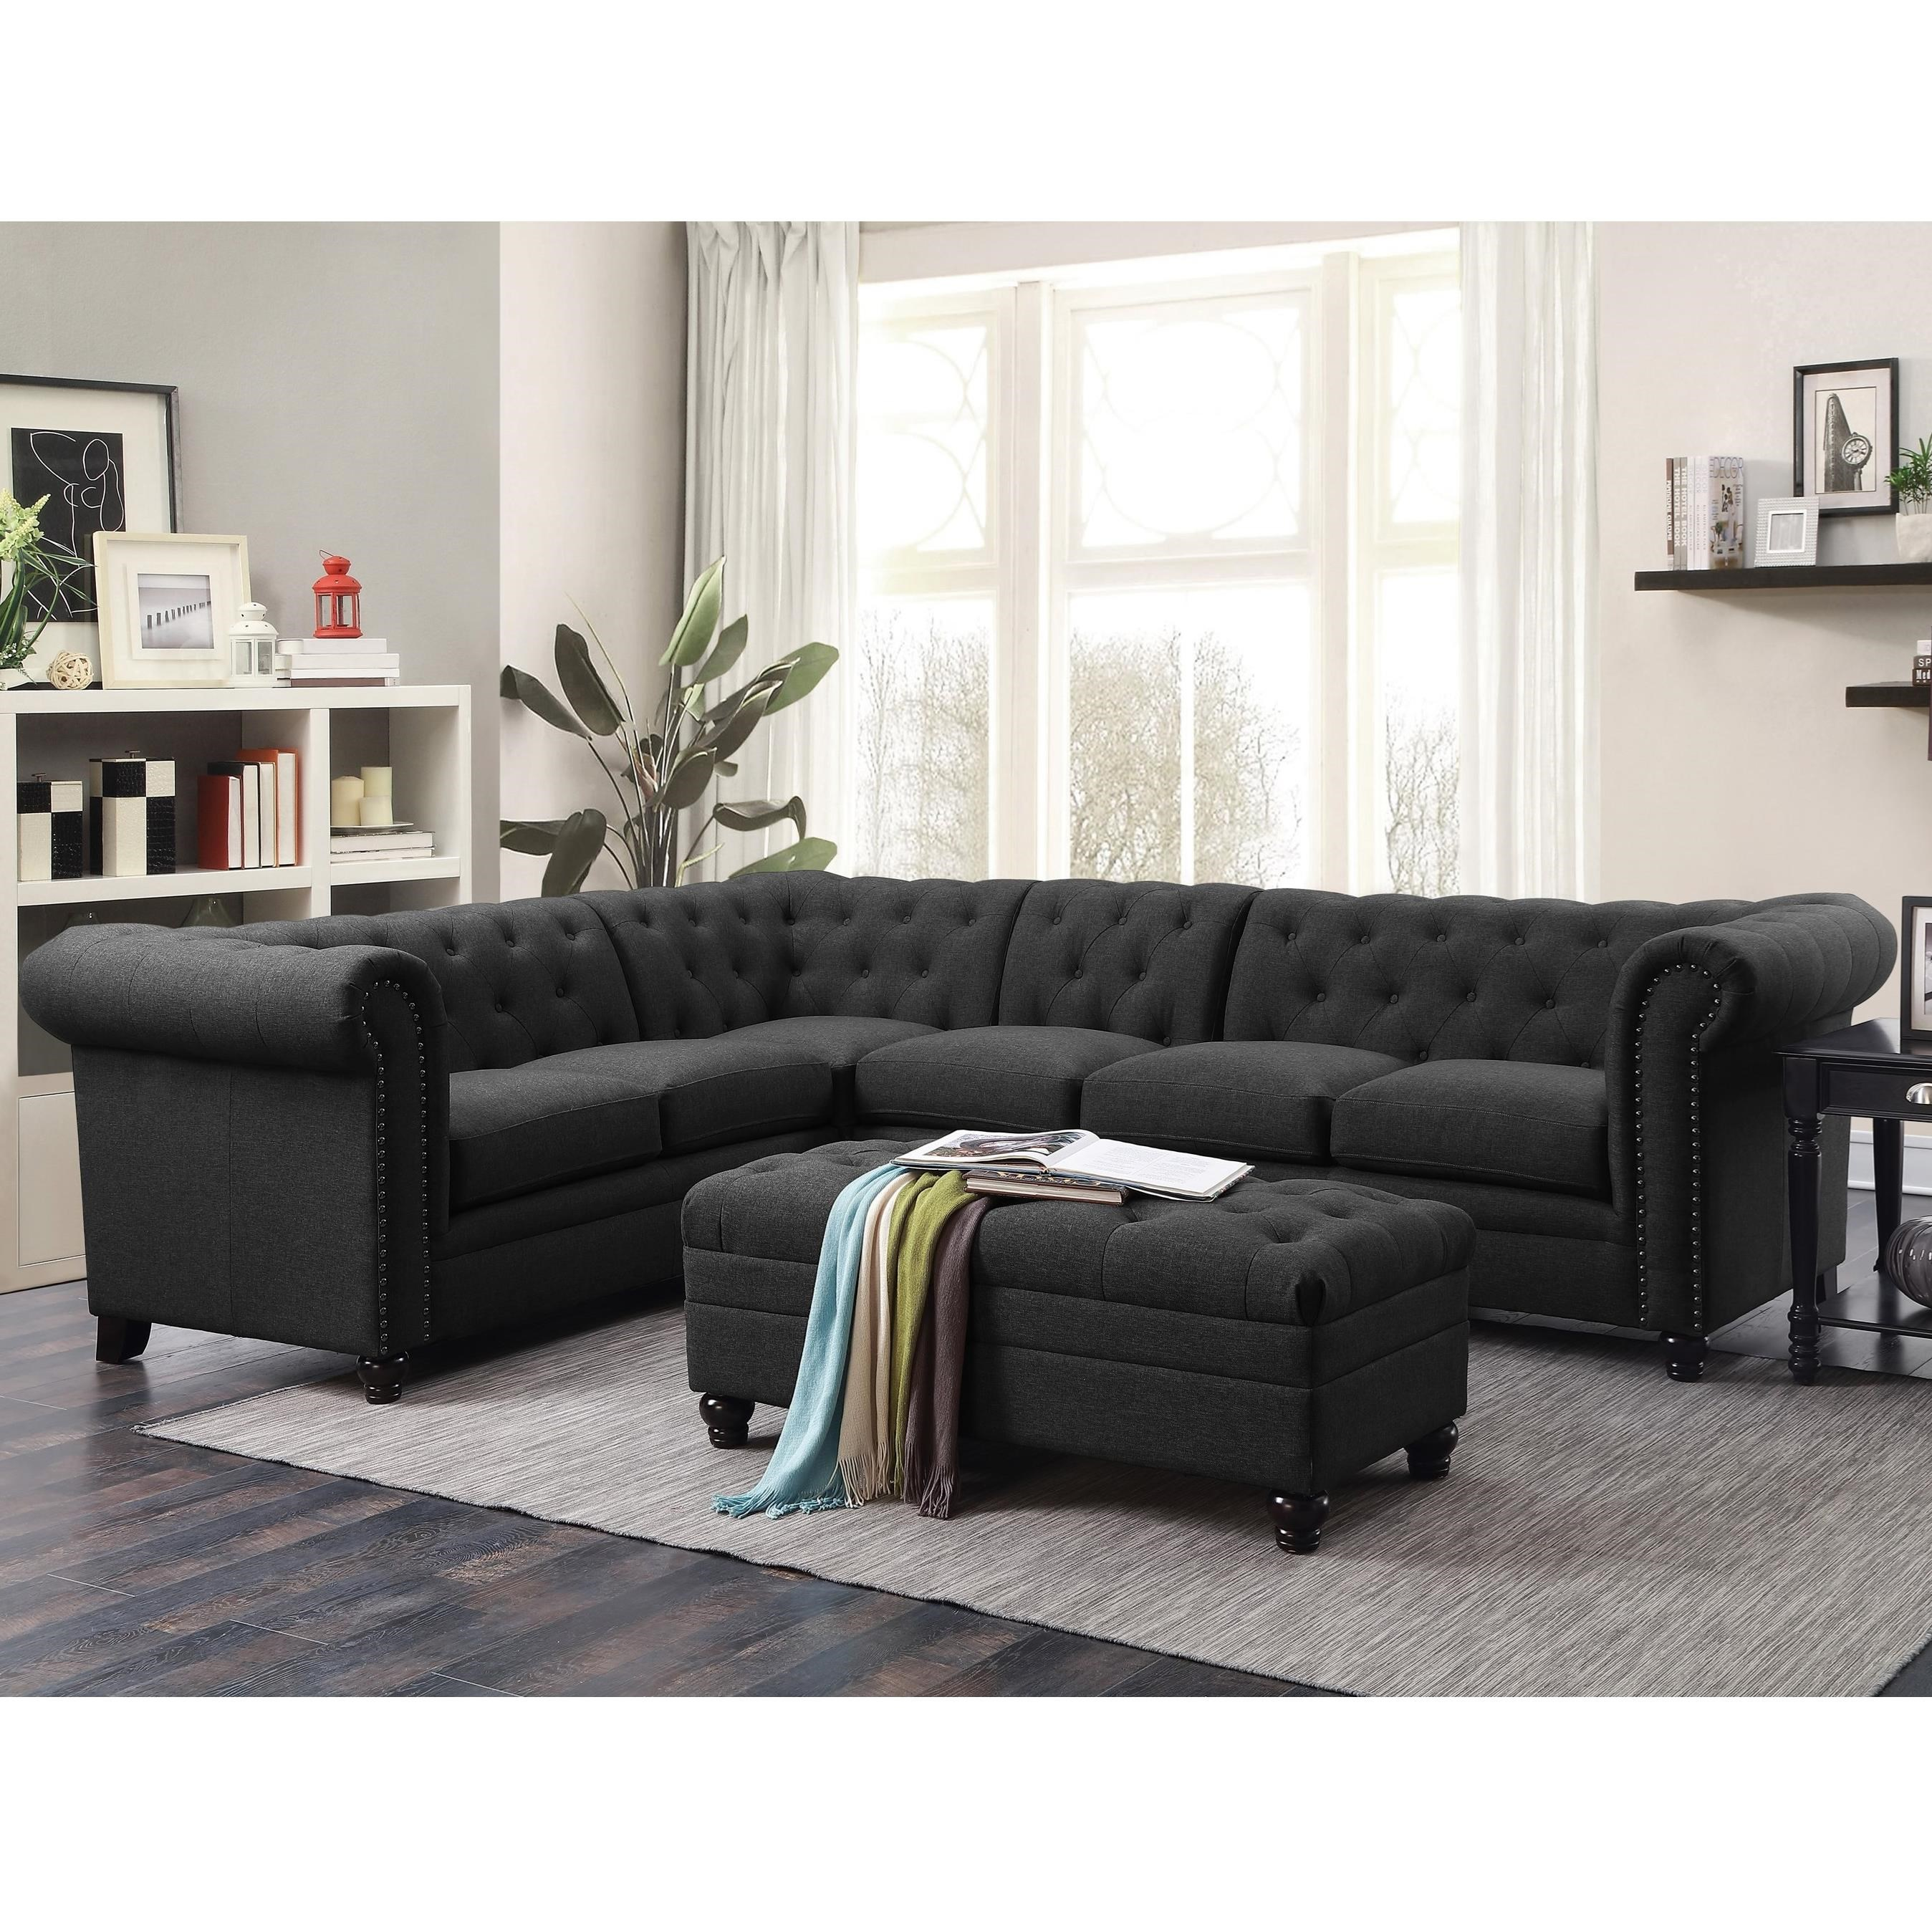 Coaster Roy ButtonTufted Sectional Sofa with Armless Chair  Del Sol Furniture  Sectional Sofas